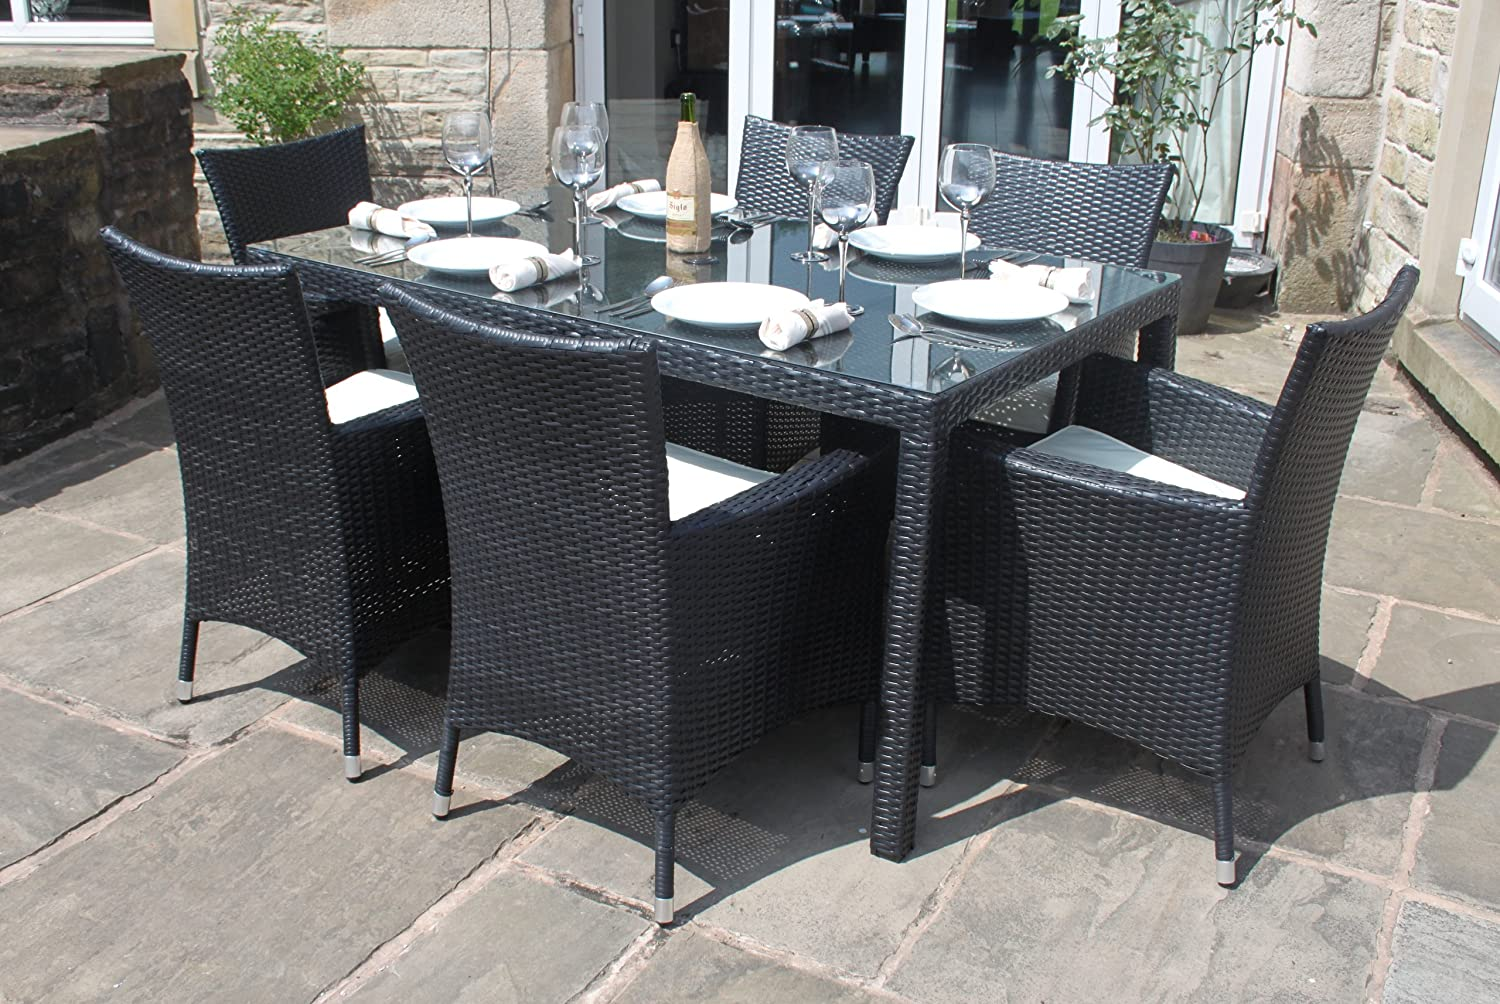 weatherproof rattan 6 seater garden furniture dining set in black amazoncouk garden outdoors